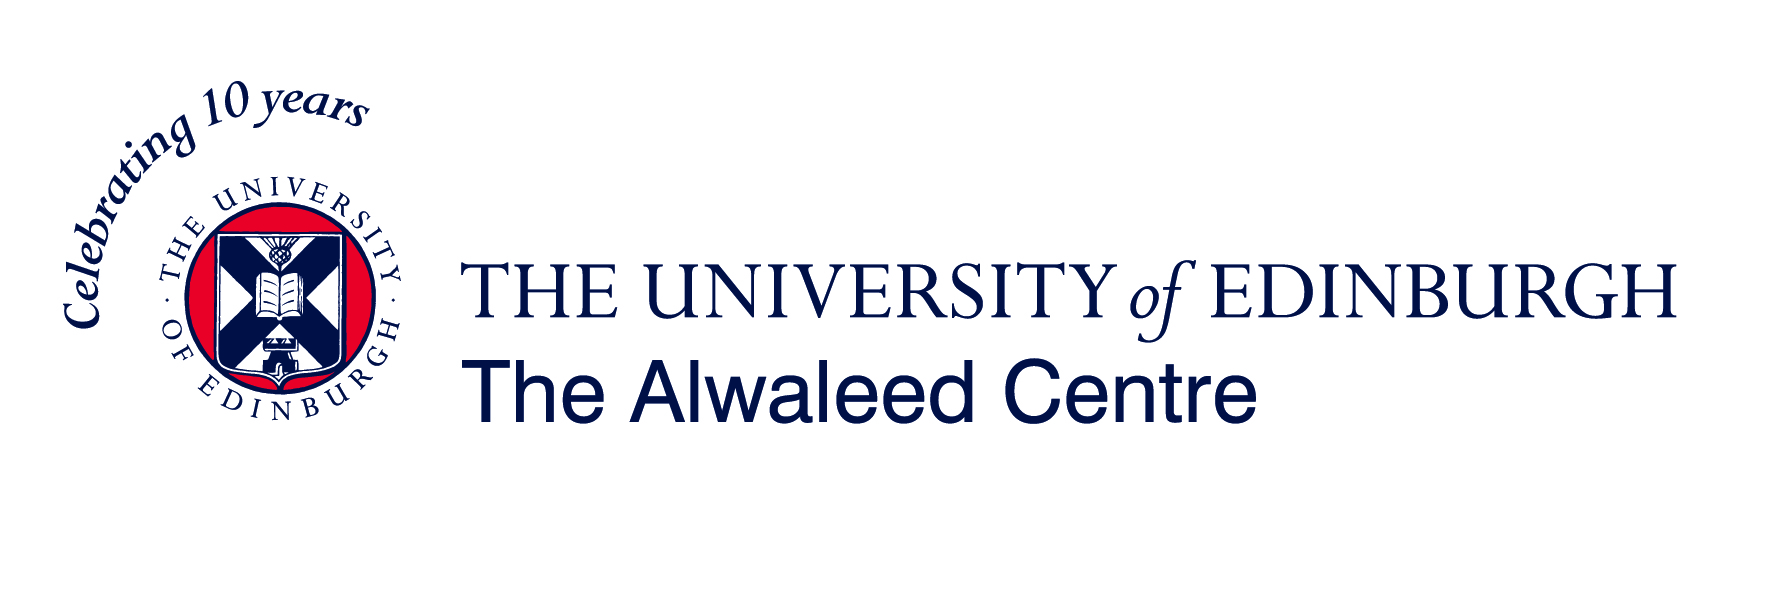 University of Edinburgh Alwaleed Centre Logo